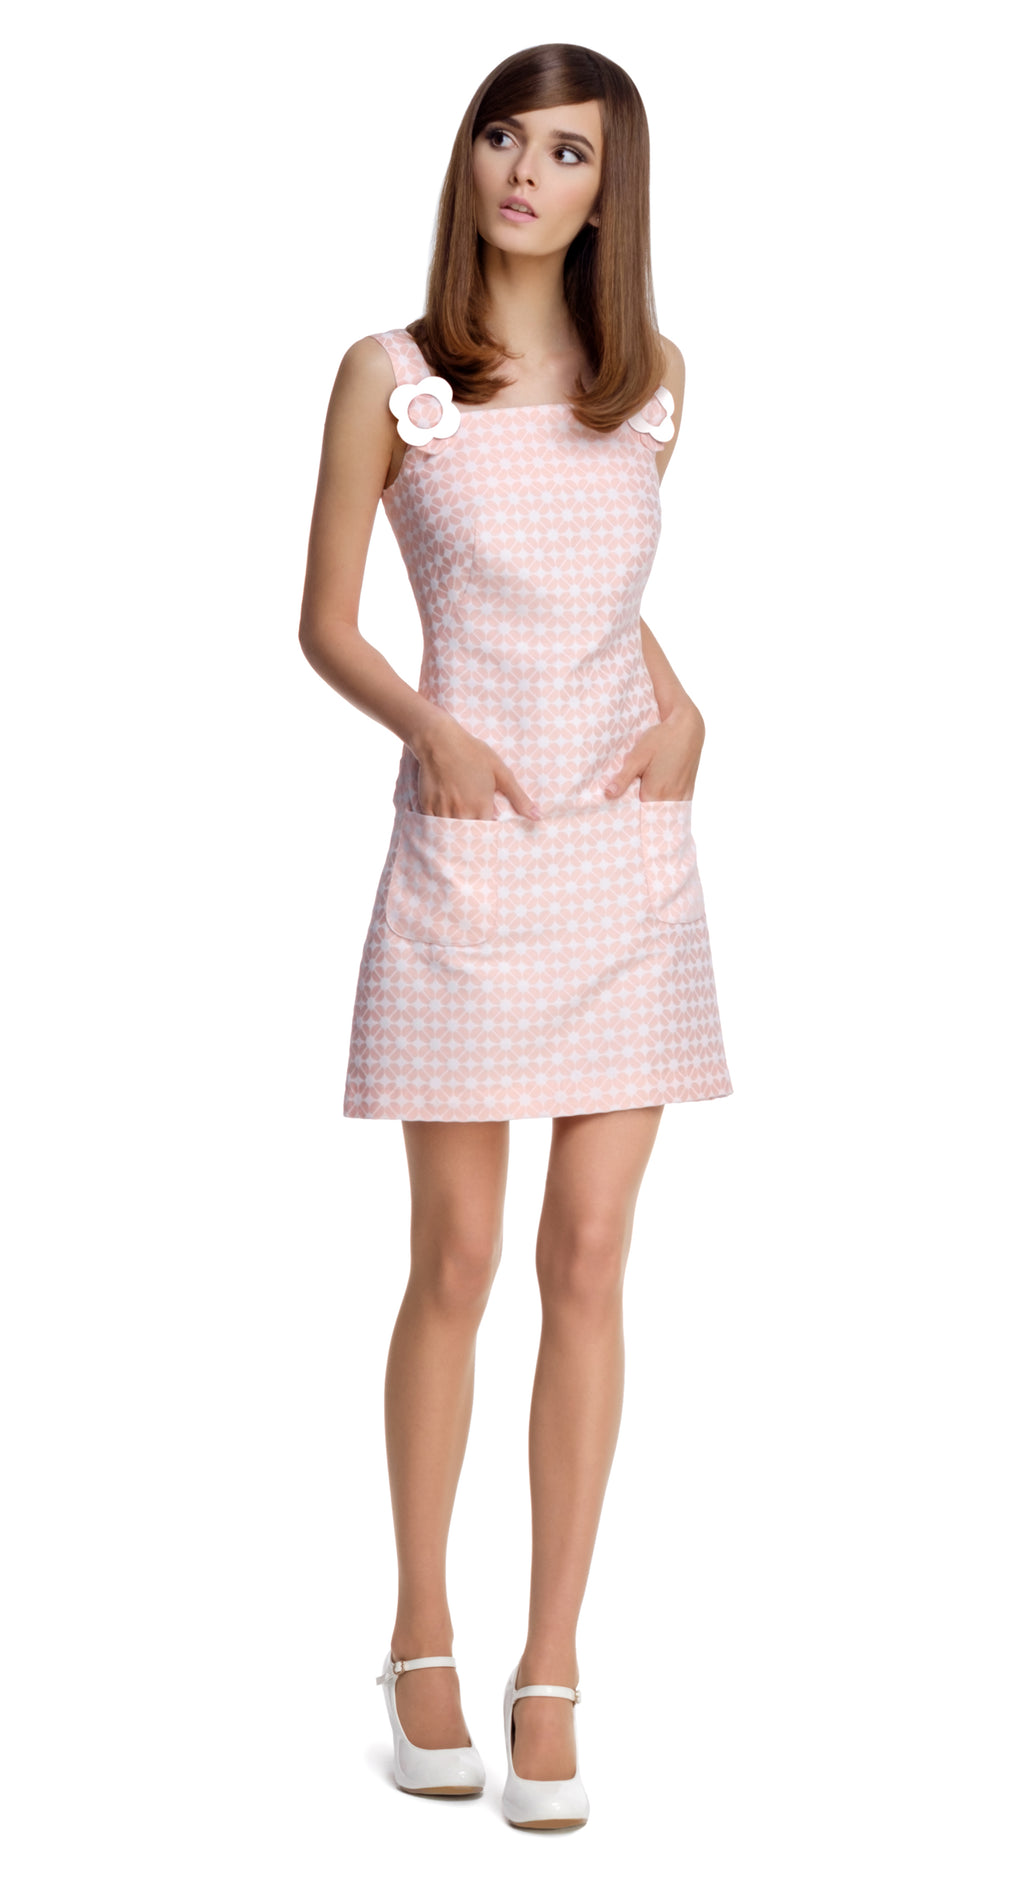 PINK GEOMETRIC PATTERN DRESS WITH FLOWER BUCKLES